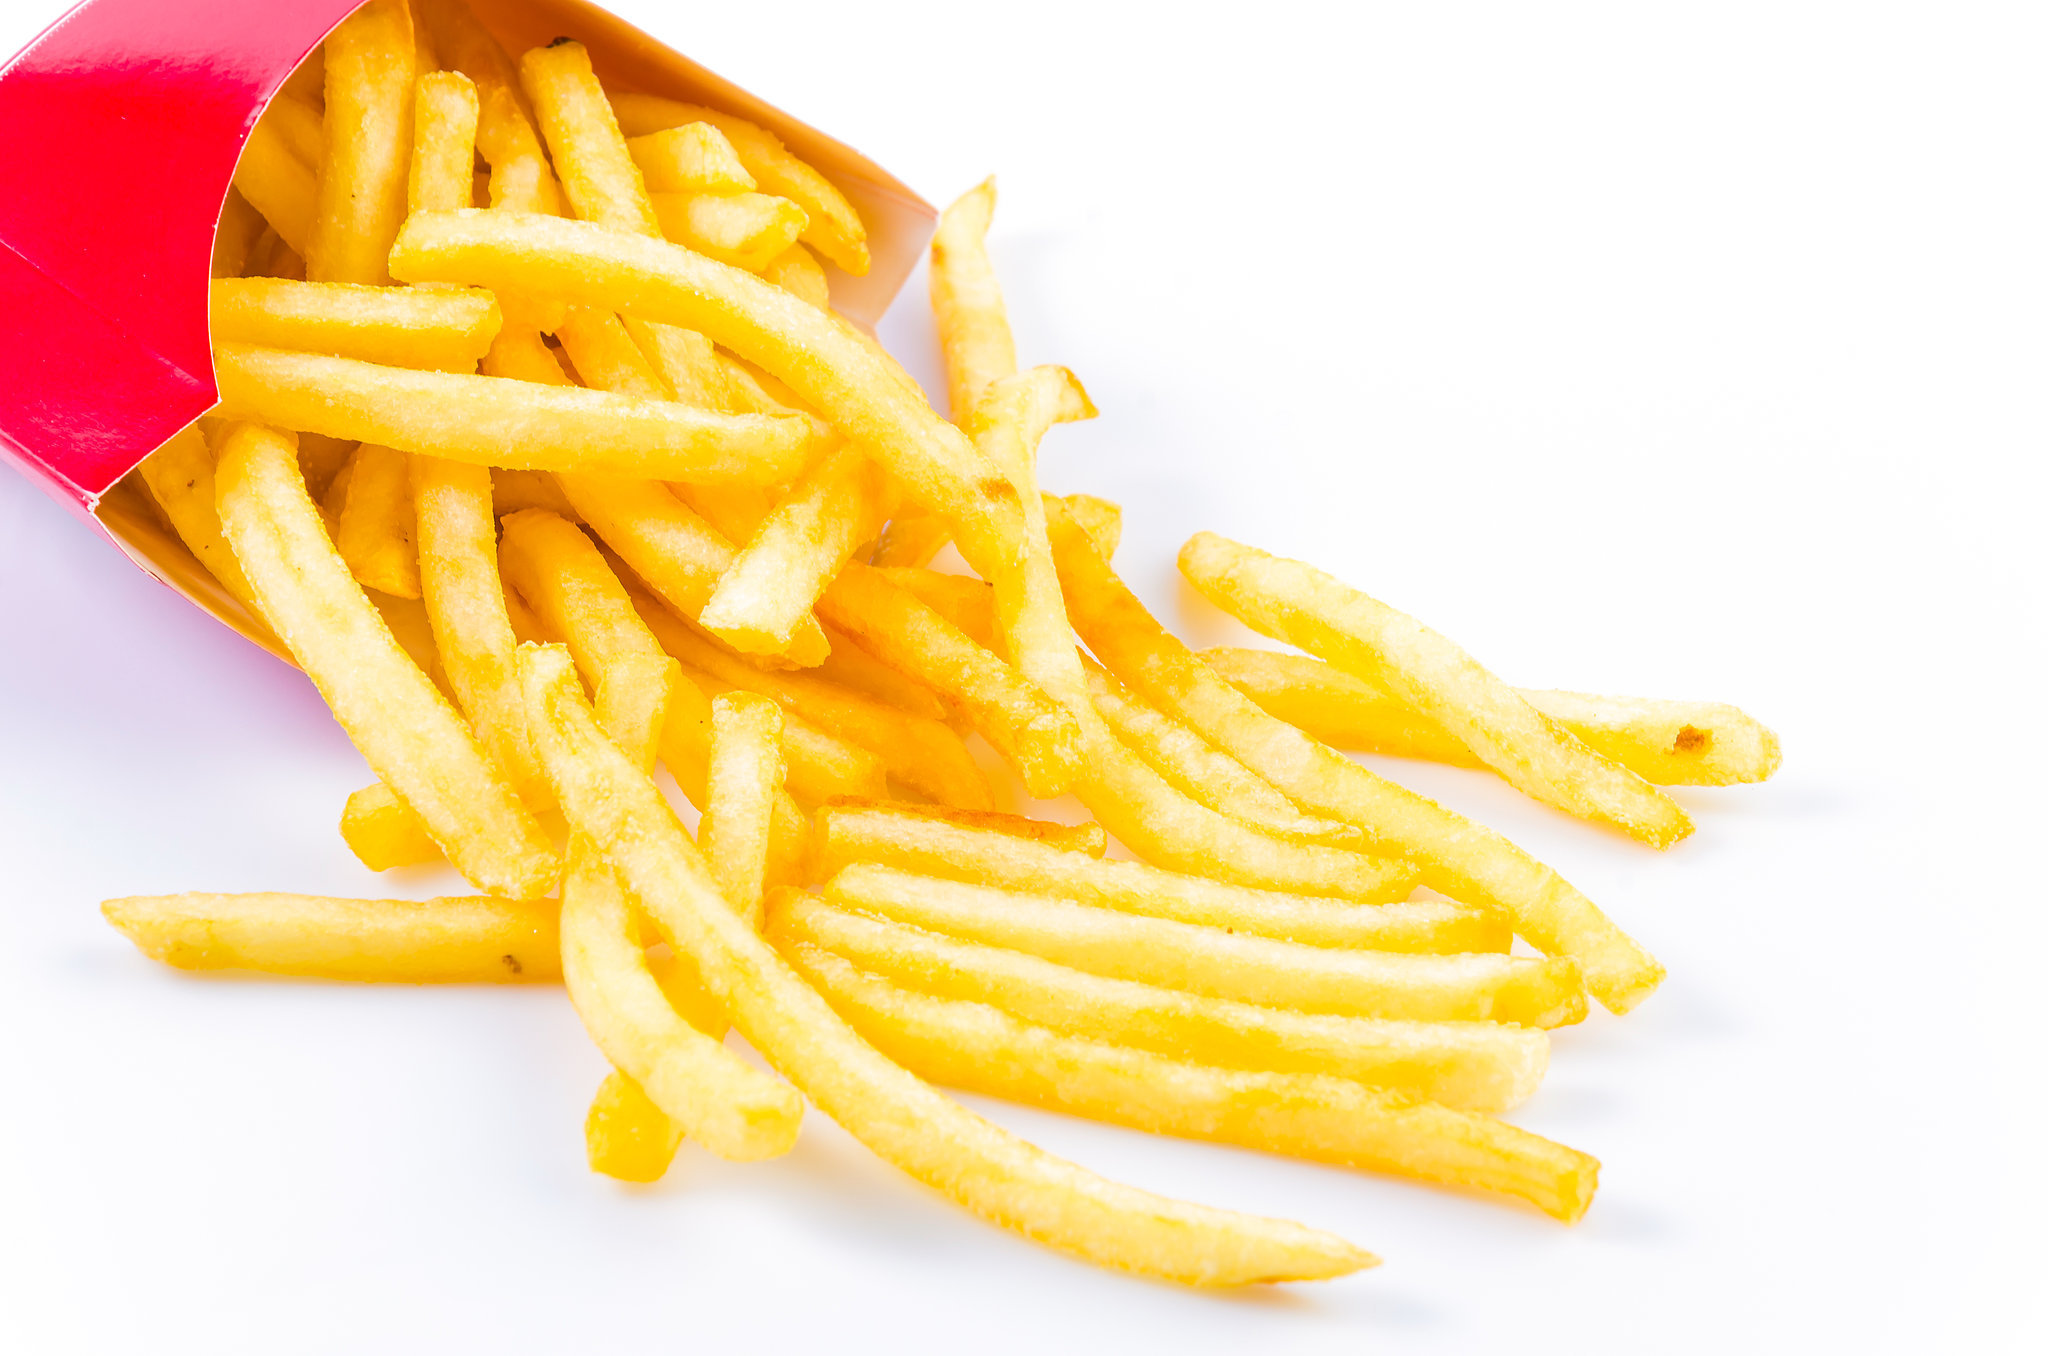 How To Make Fast Food French Fries